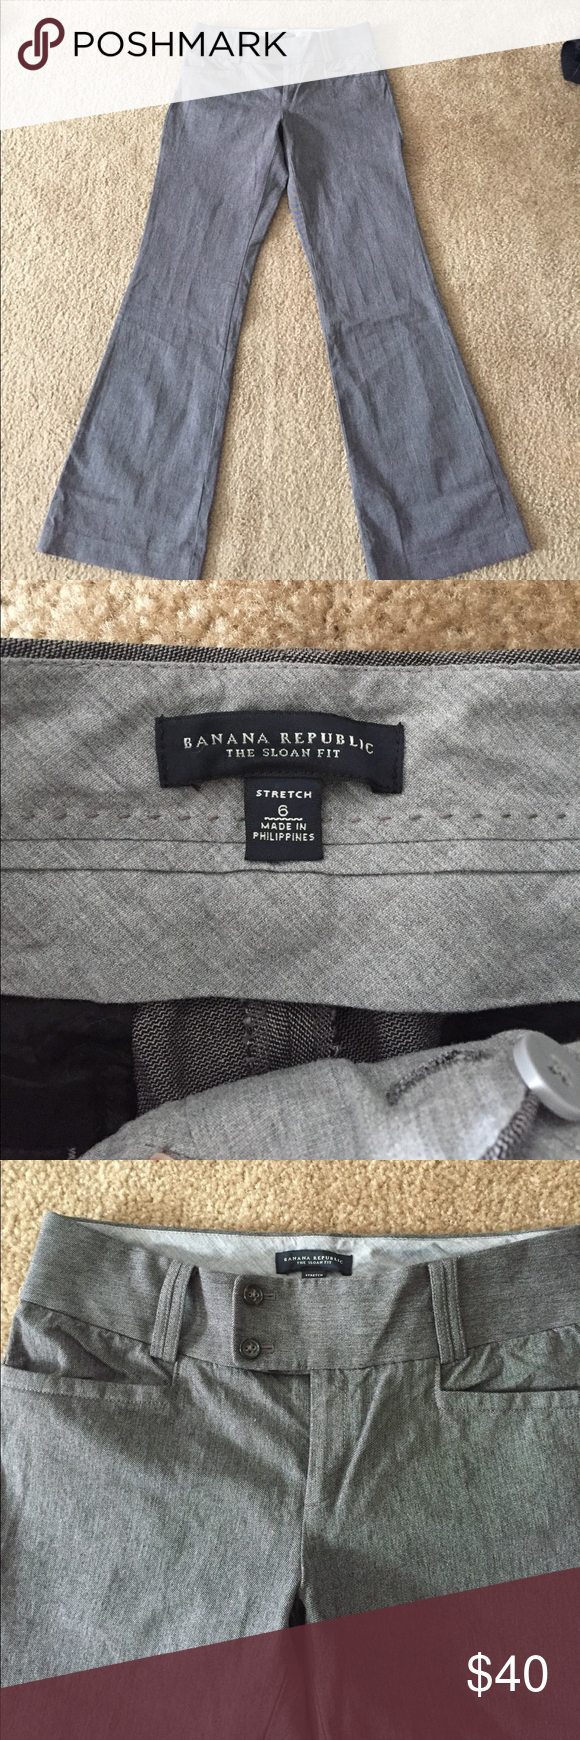 Pants Banana Sloan fit pants. Stretchy and comfy. Worn once for an interview. Basically brand new! Has back butt pockets. They are a pretty charcoal/black blend. Butt pockets are still sewn together! Banana Republic Pants Trousers